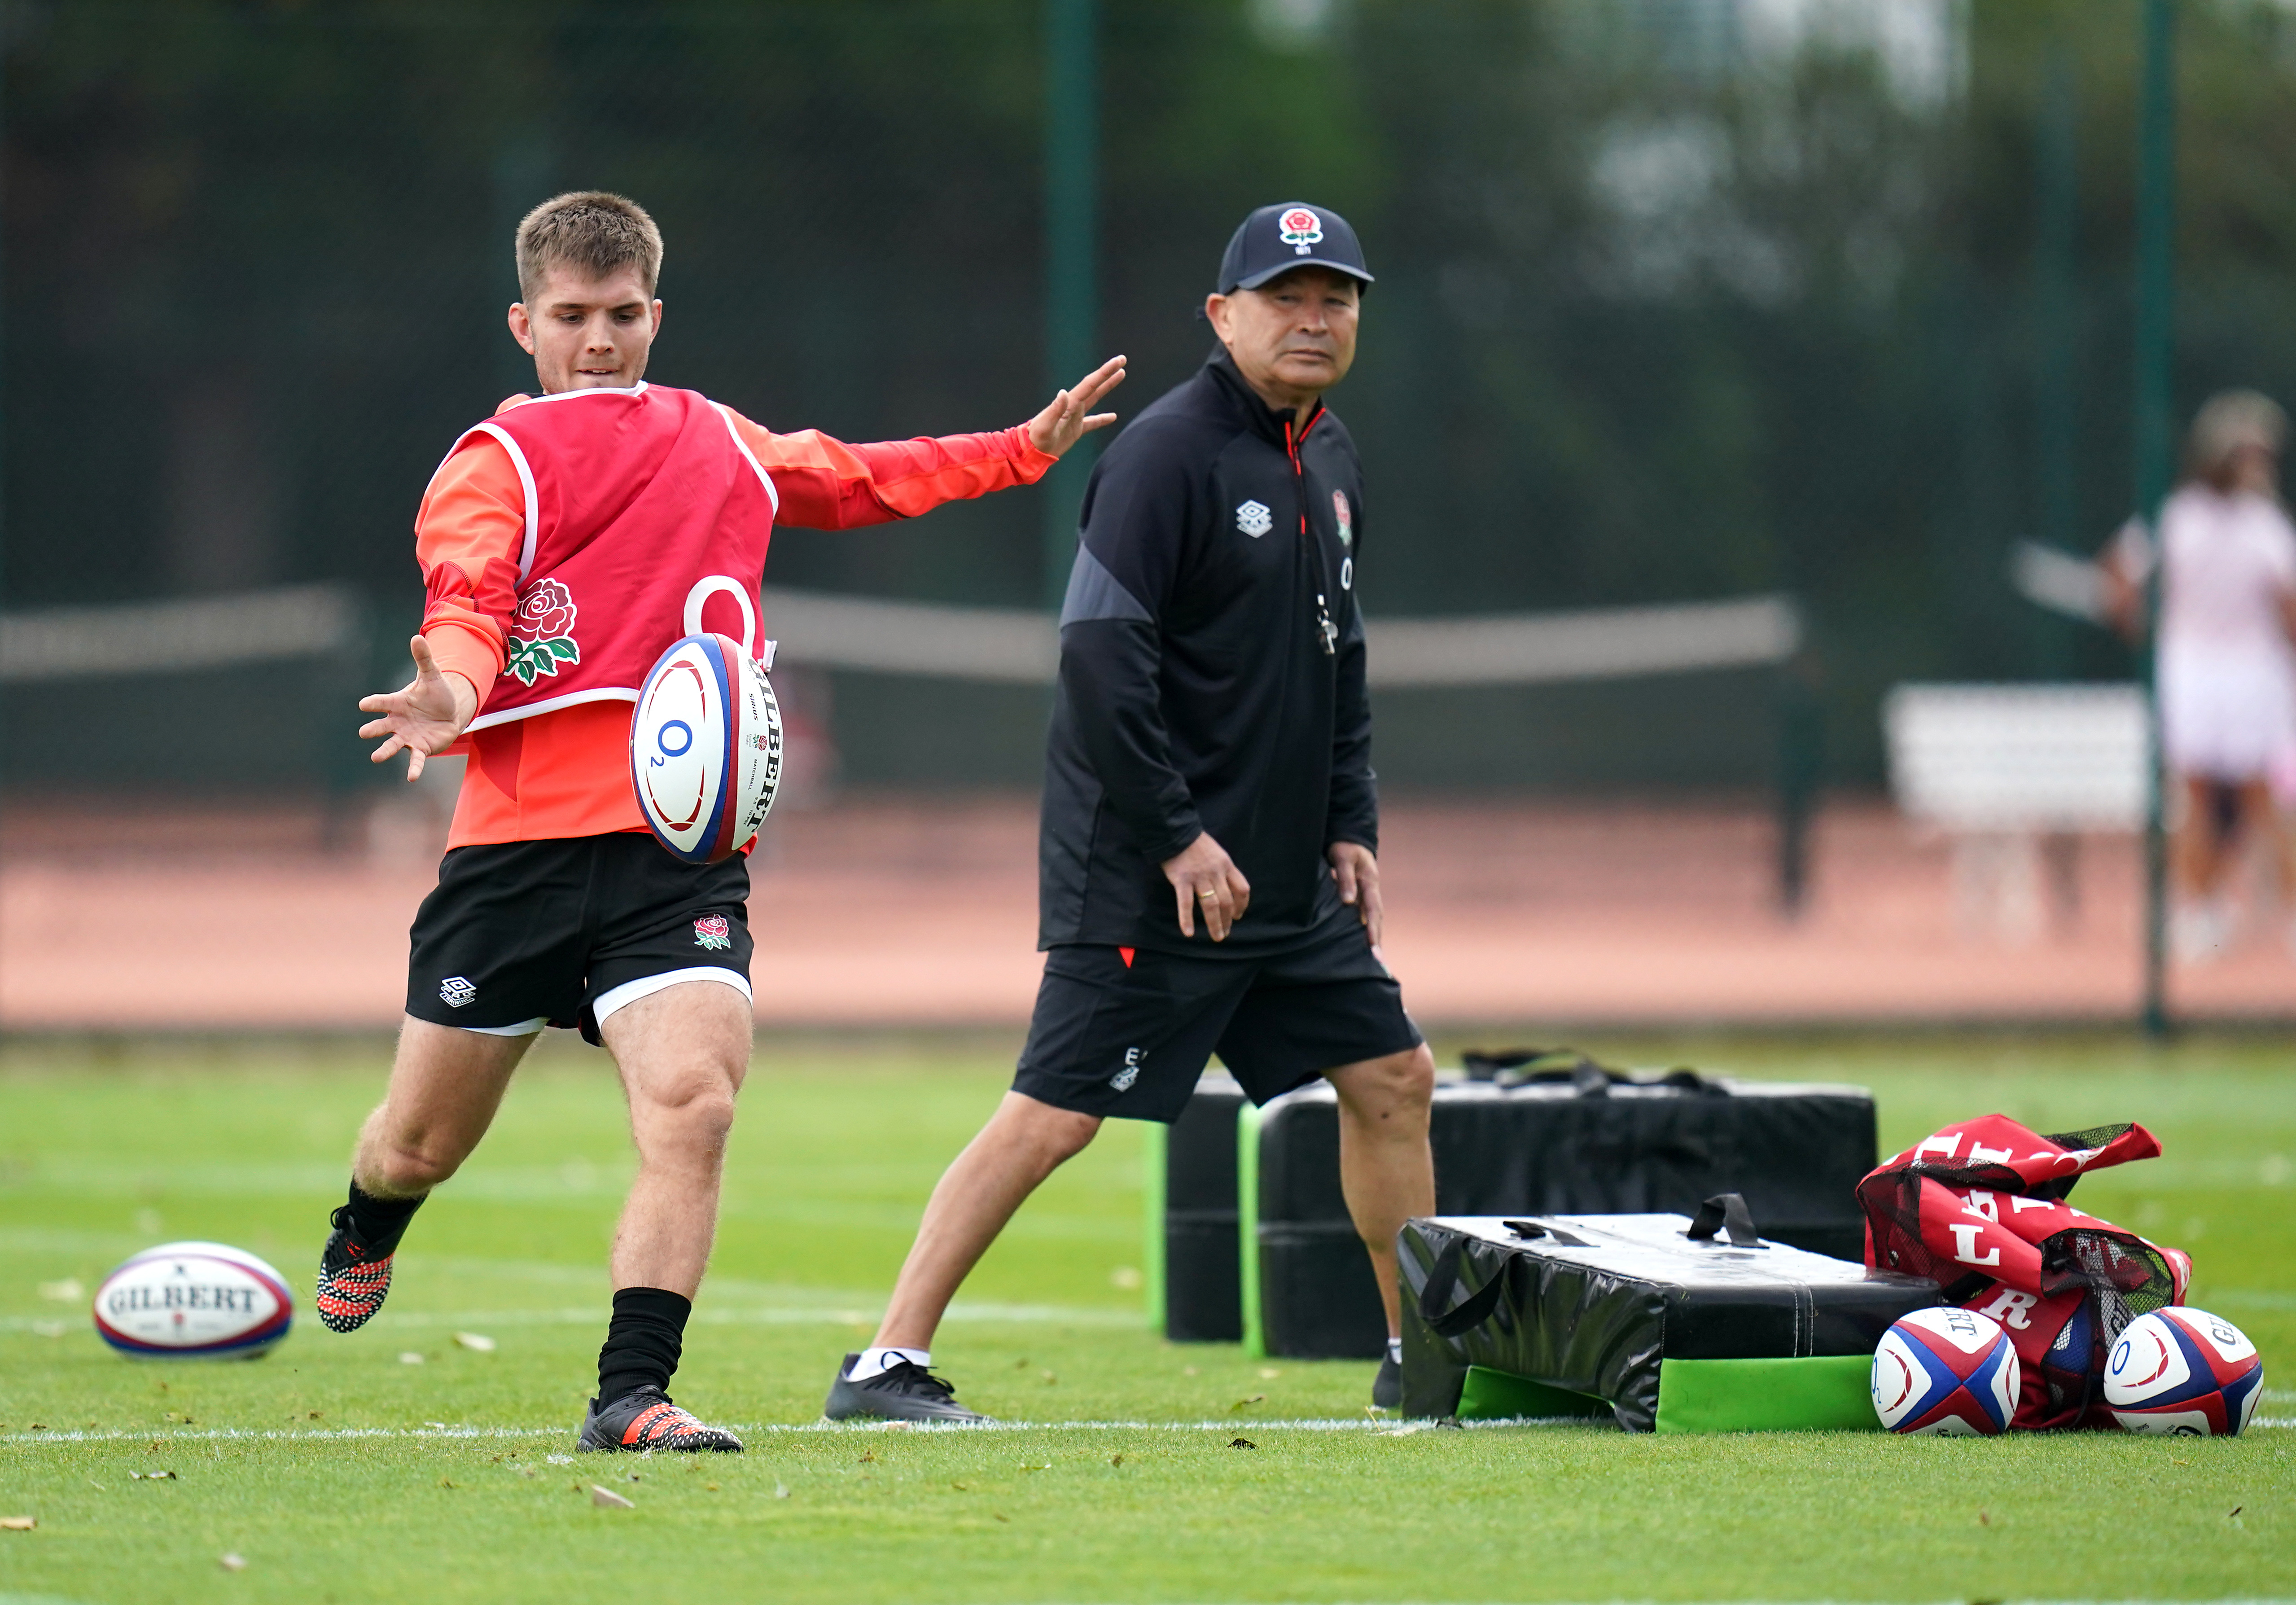 <p>England's Harry Randall (left) as head coach Eddie Jones looks on during a training session at The Lensbury, Teddington. Picture date: Tuesday September 28, 2021.</p>